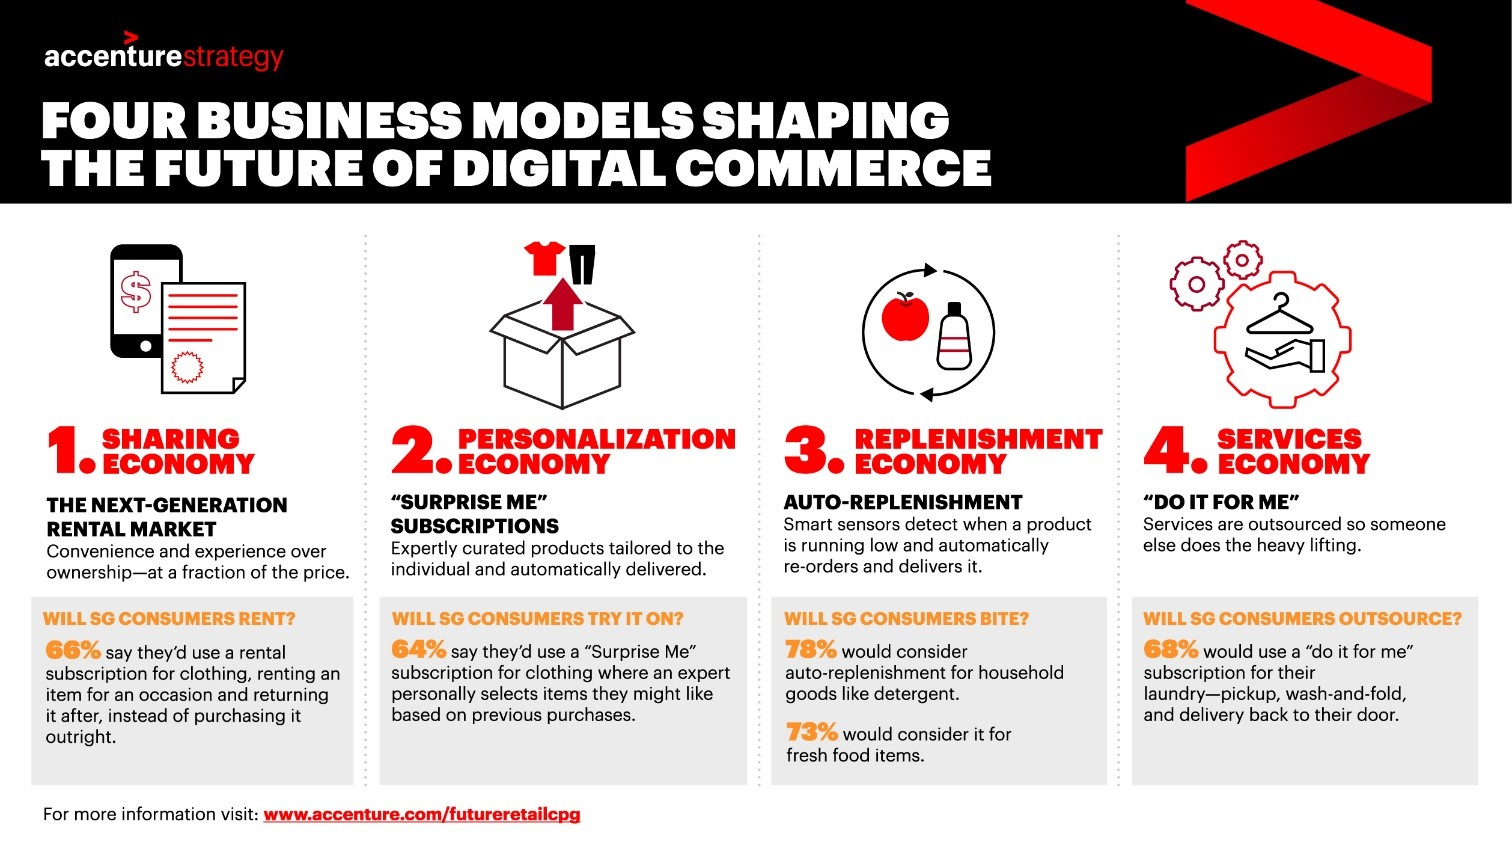 Four business models shaping the future  of digital commerce